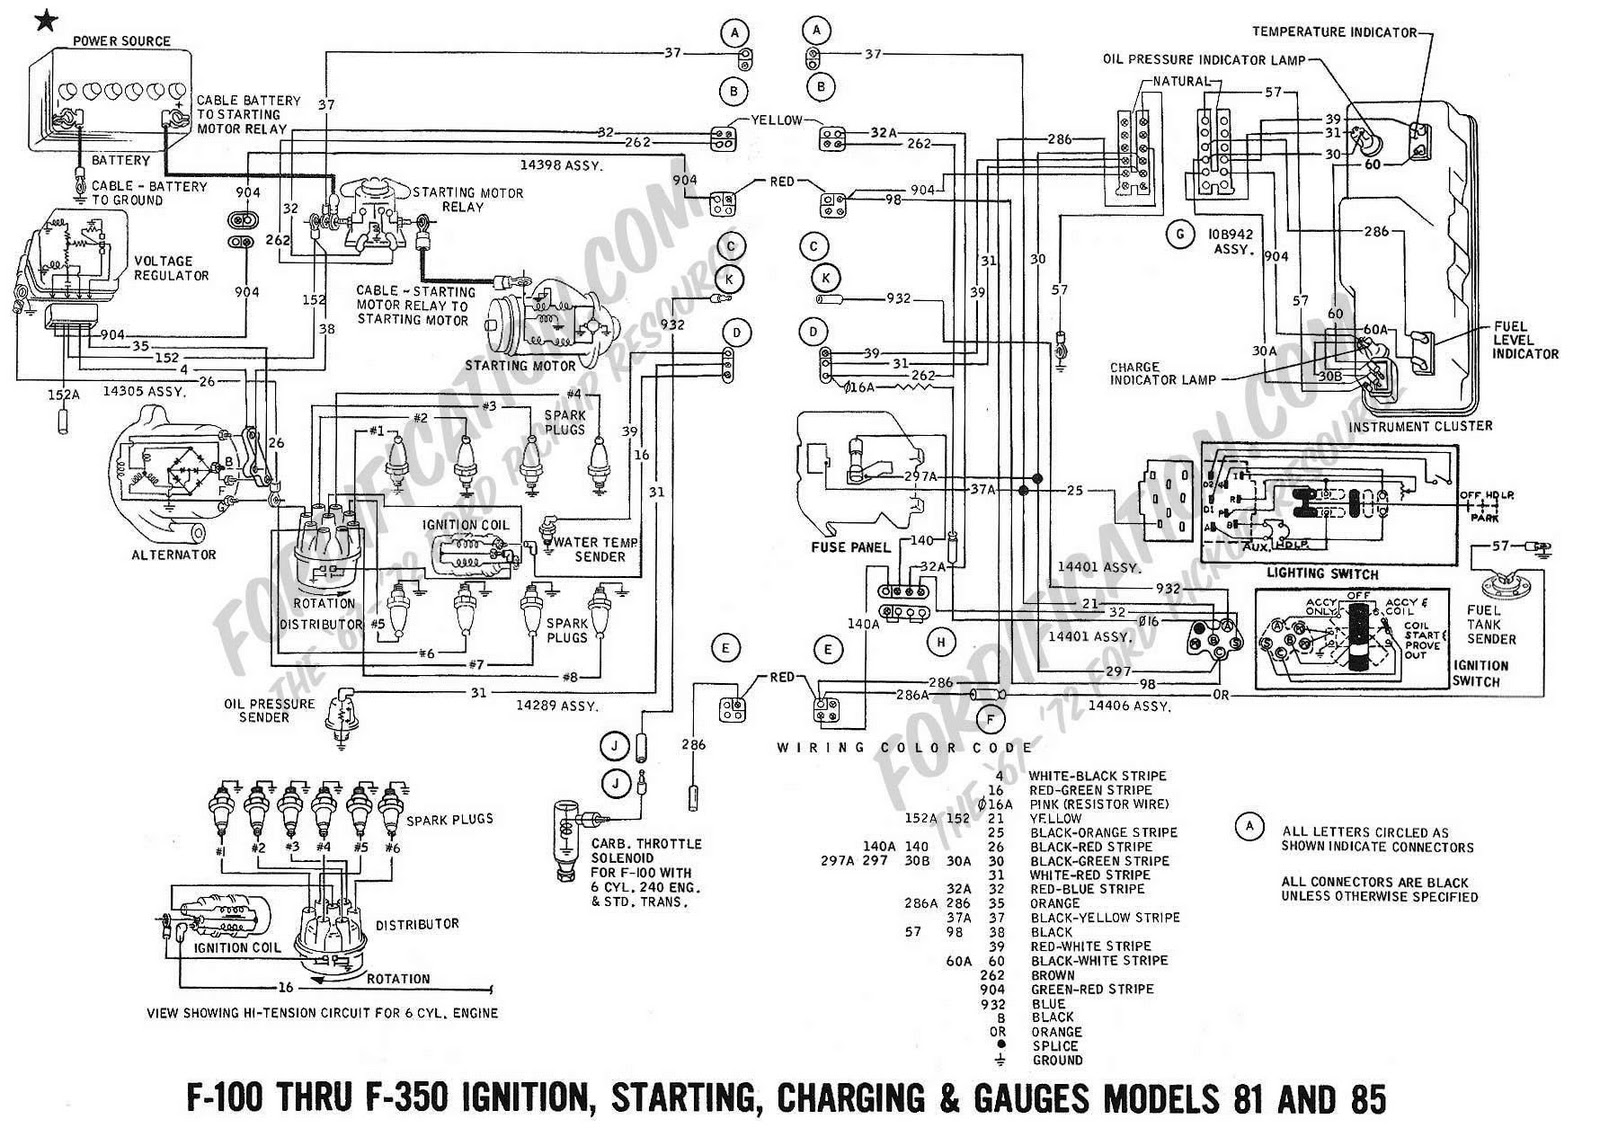 ford f250 wiring diagram wire management wiring diagram ford f250 wiring diagram for trailer plug ford f250 wiring diagram [ 1600 x 1137 Pixel ]